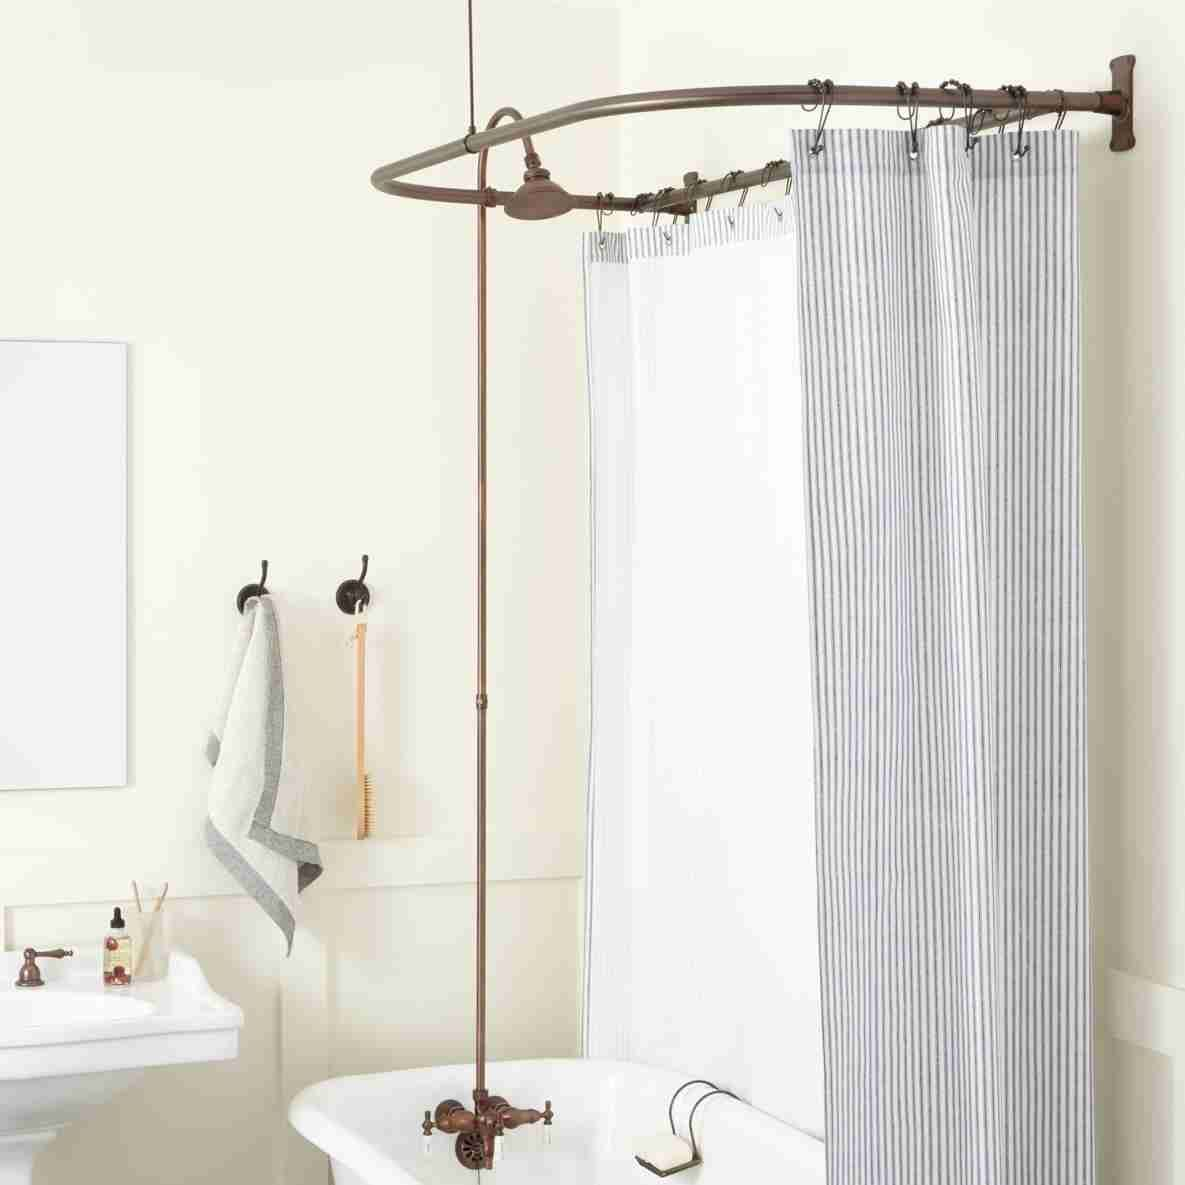 New post Trending-clawfoot bathtub shower conversion kit-Visit ...